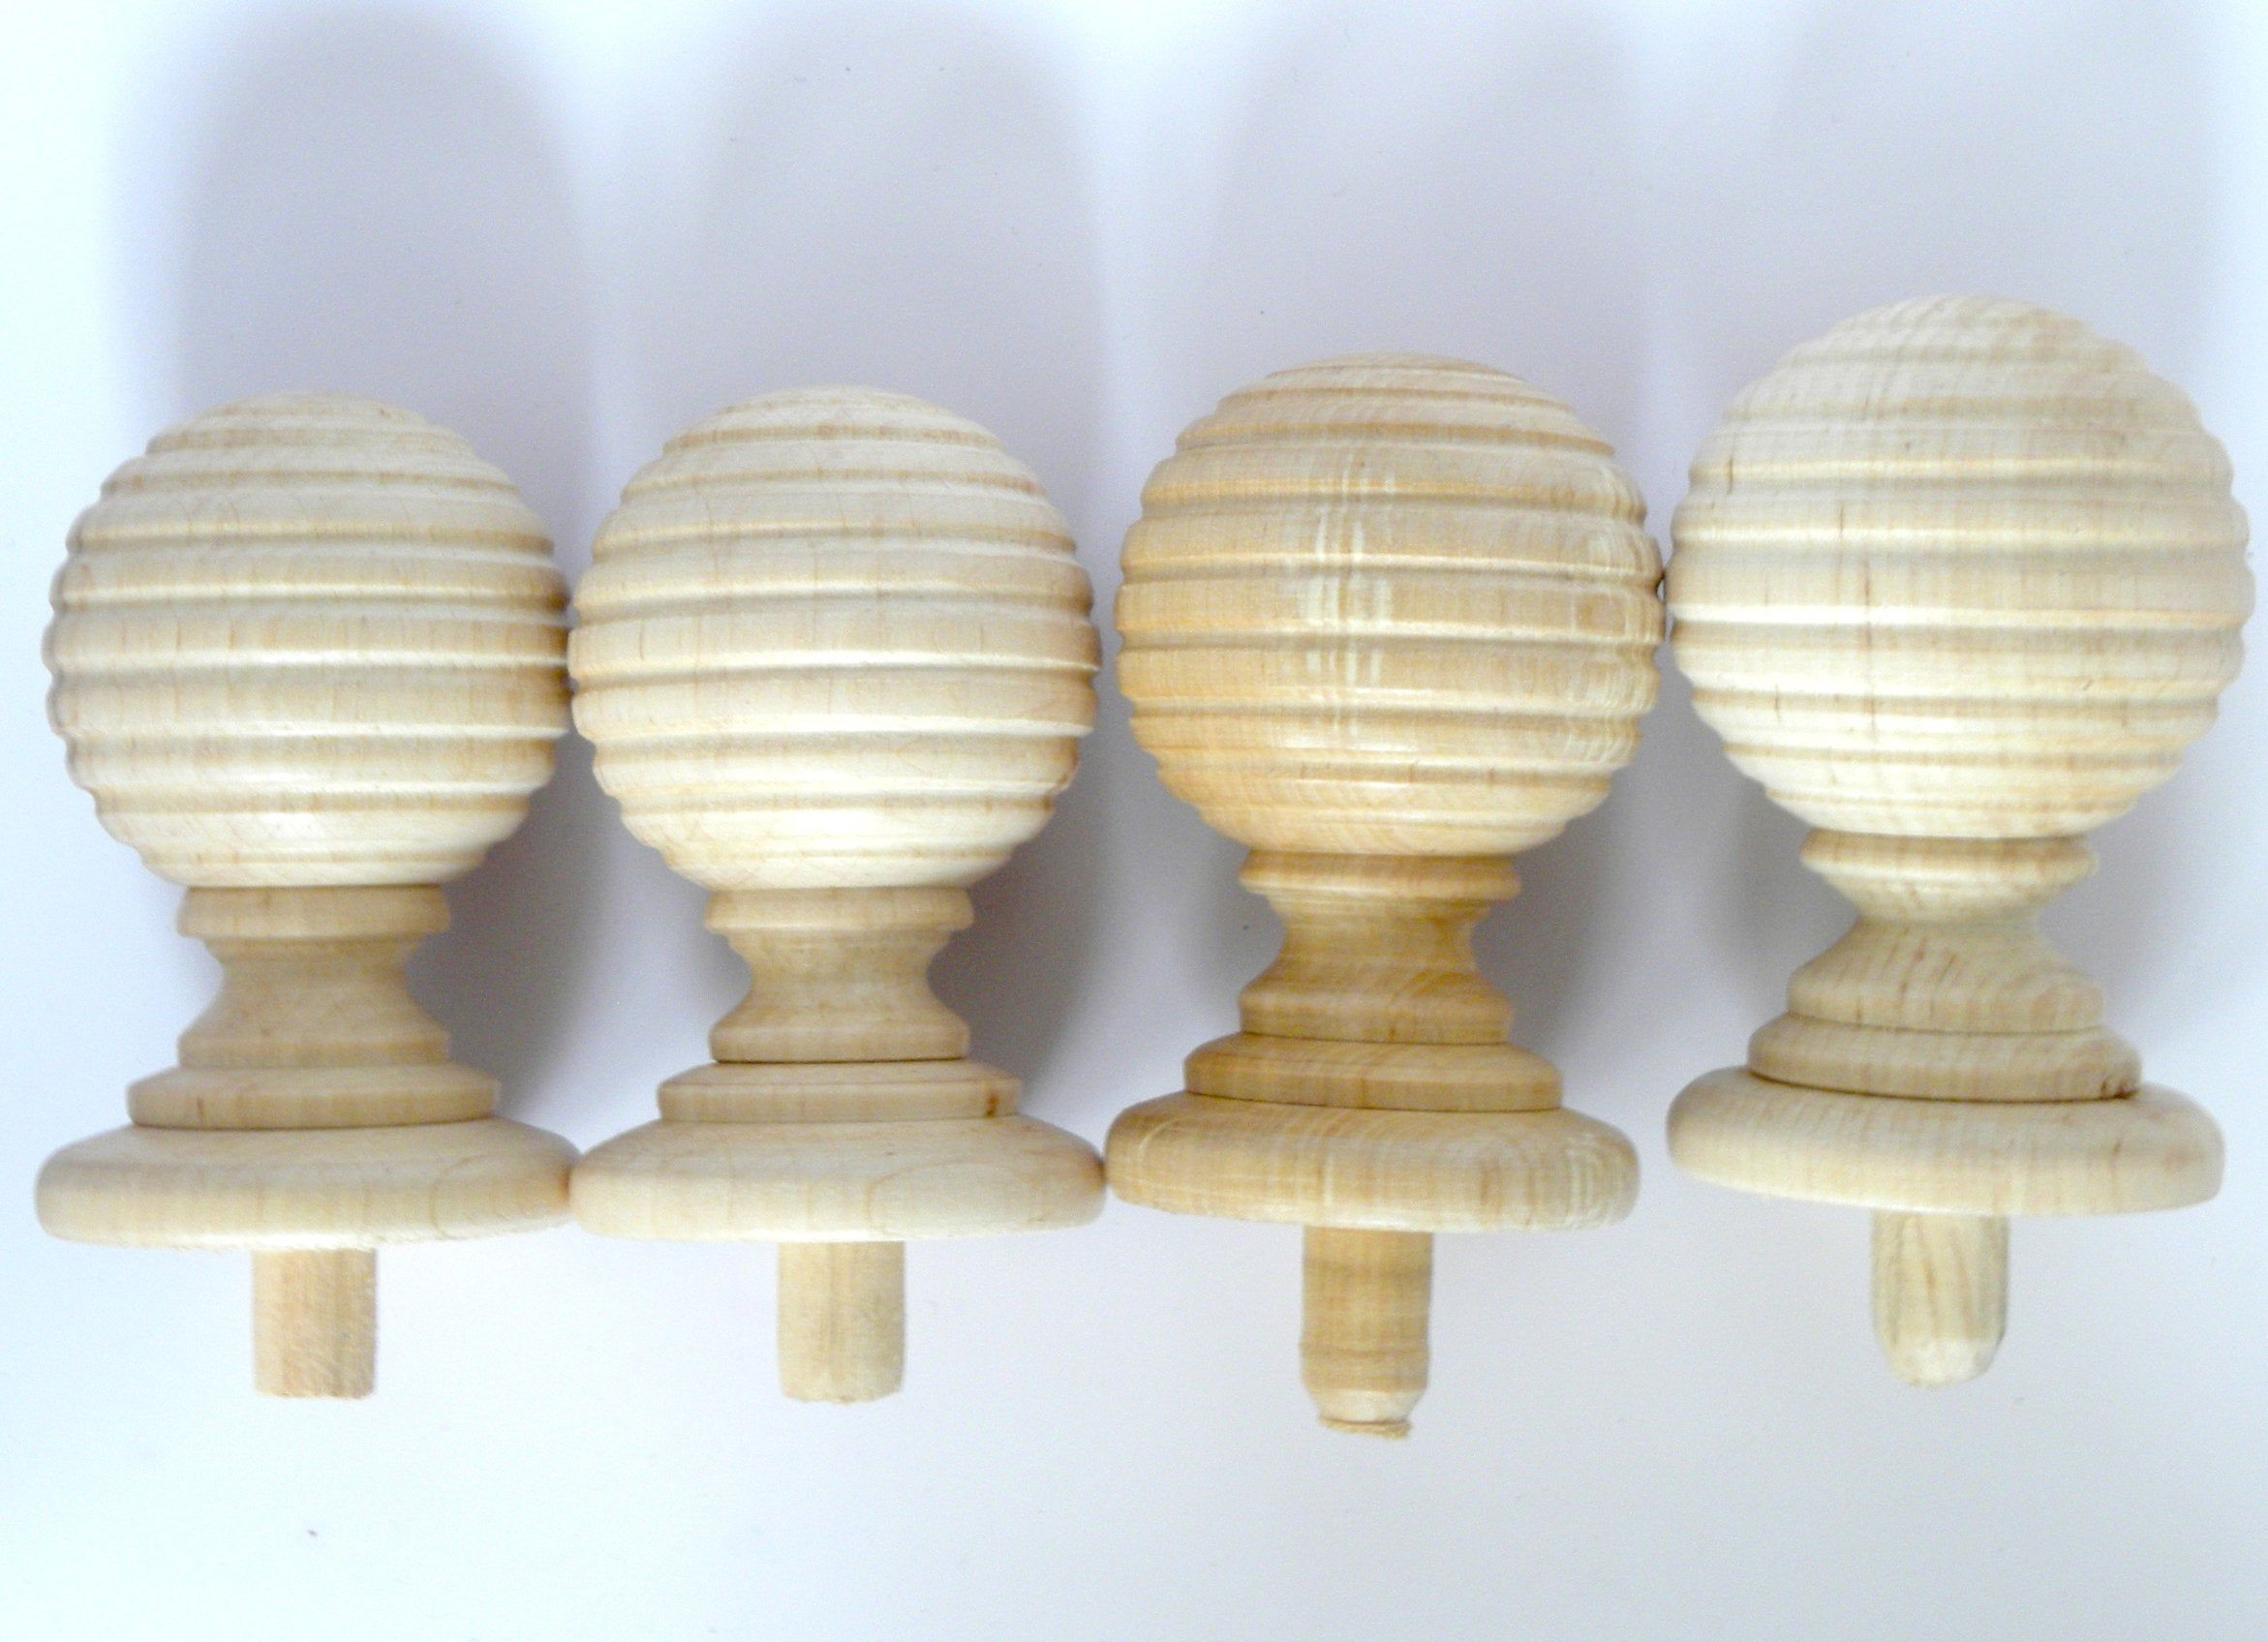 Curtain Rods Finials 4 Pieces Curtain Pole High Quality Wood